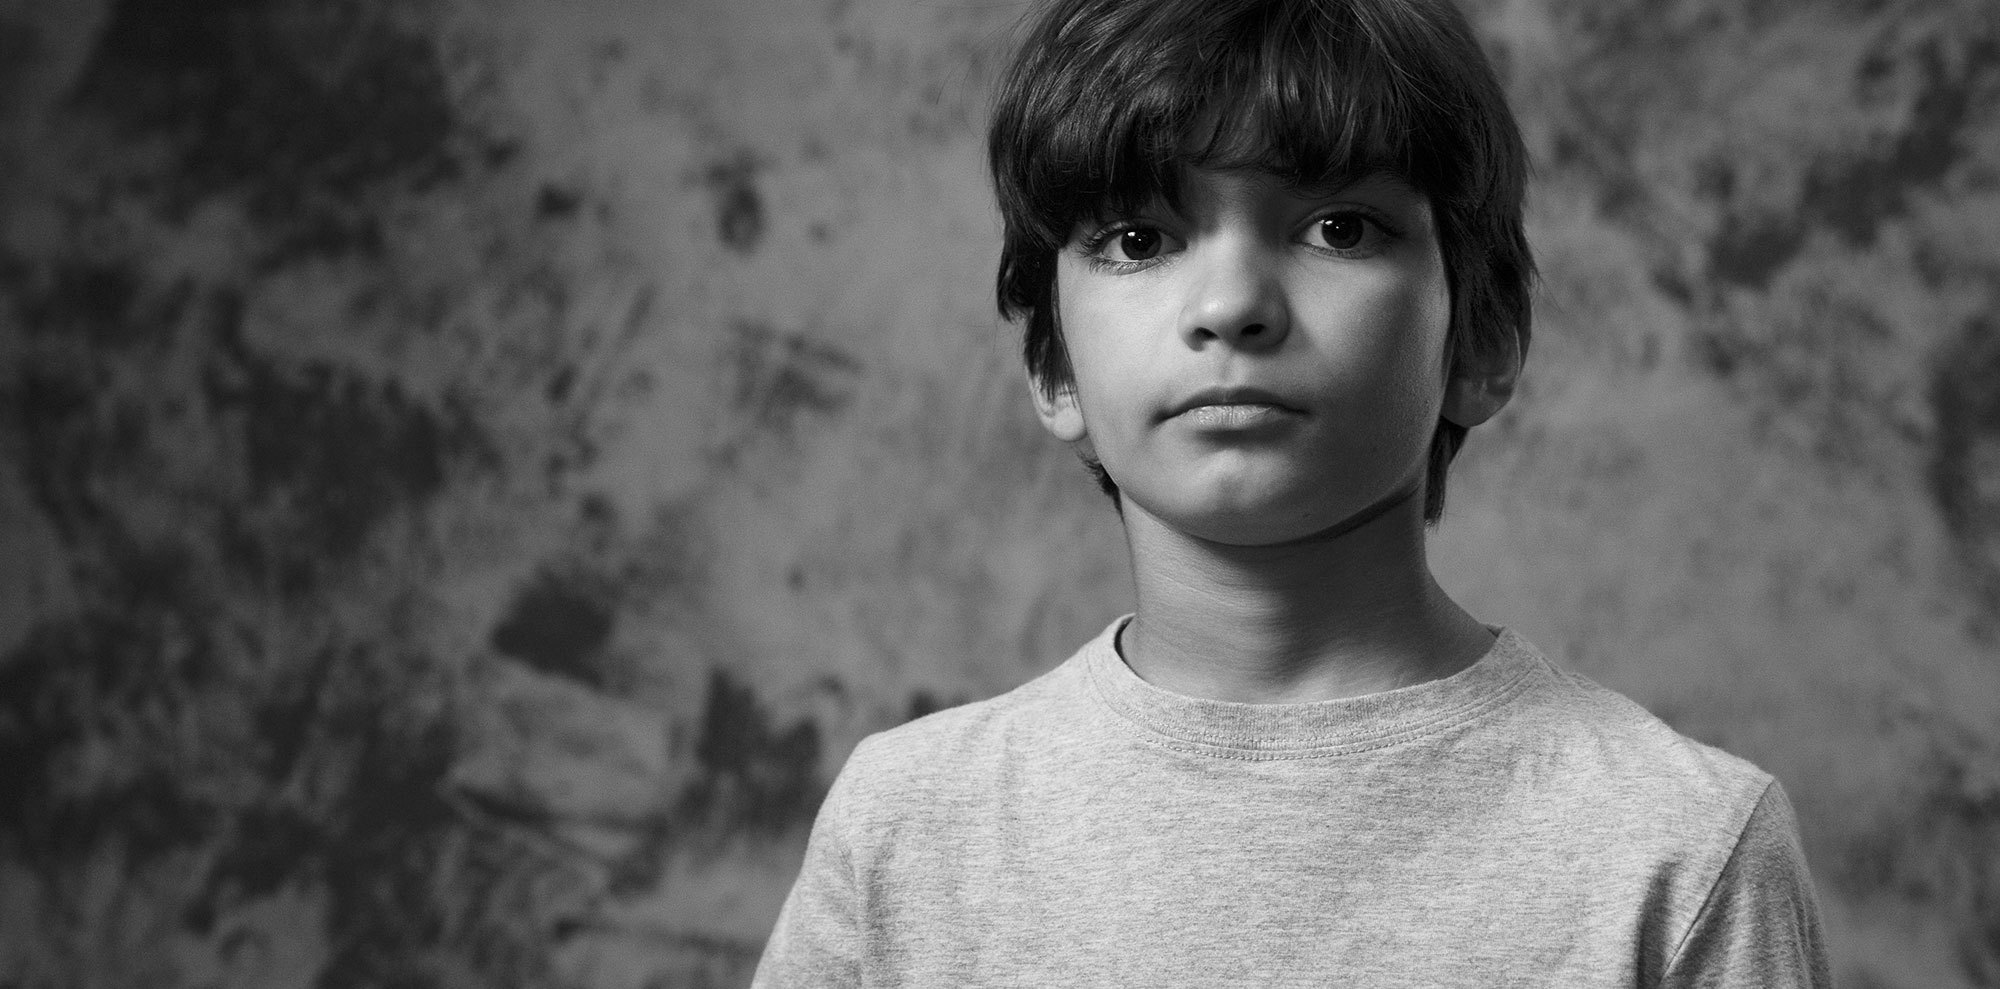 young boy with serious look